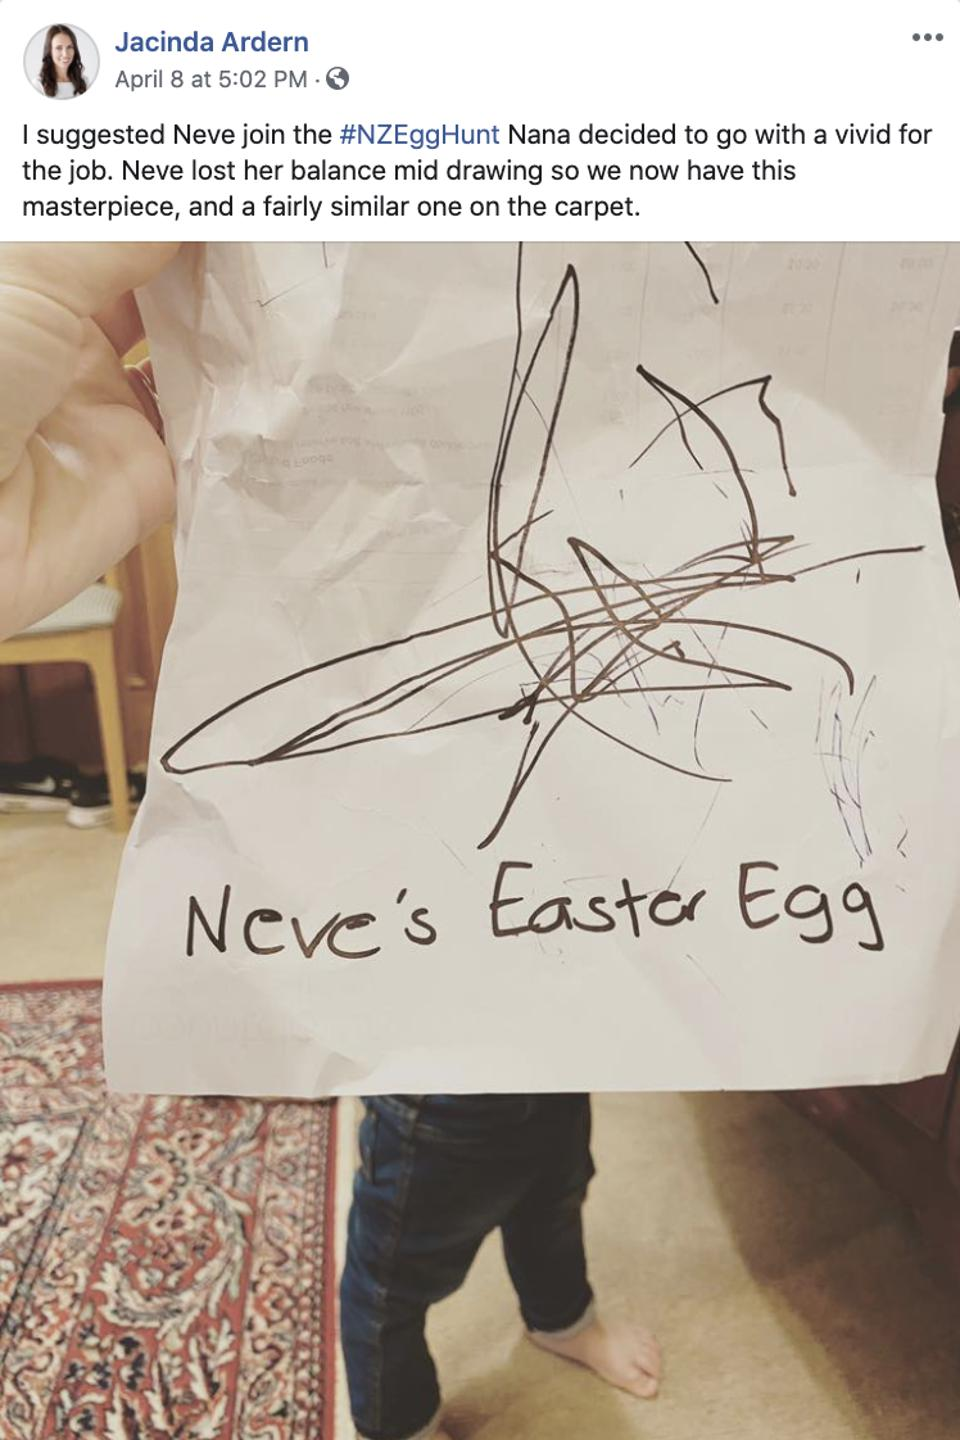 Jacinda Ardern's daughter's Easter Egg drawing